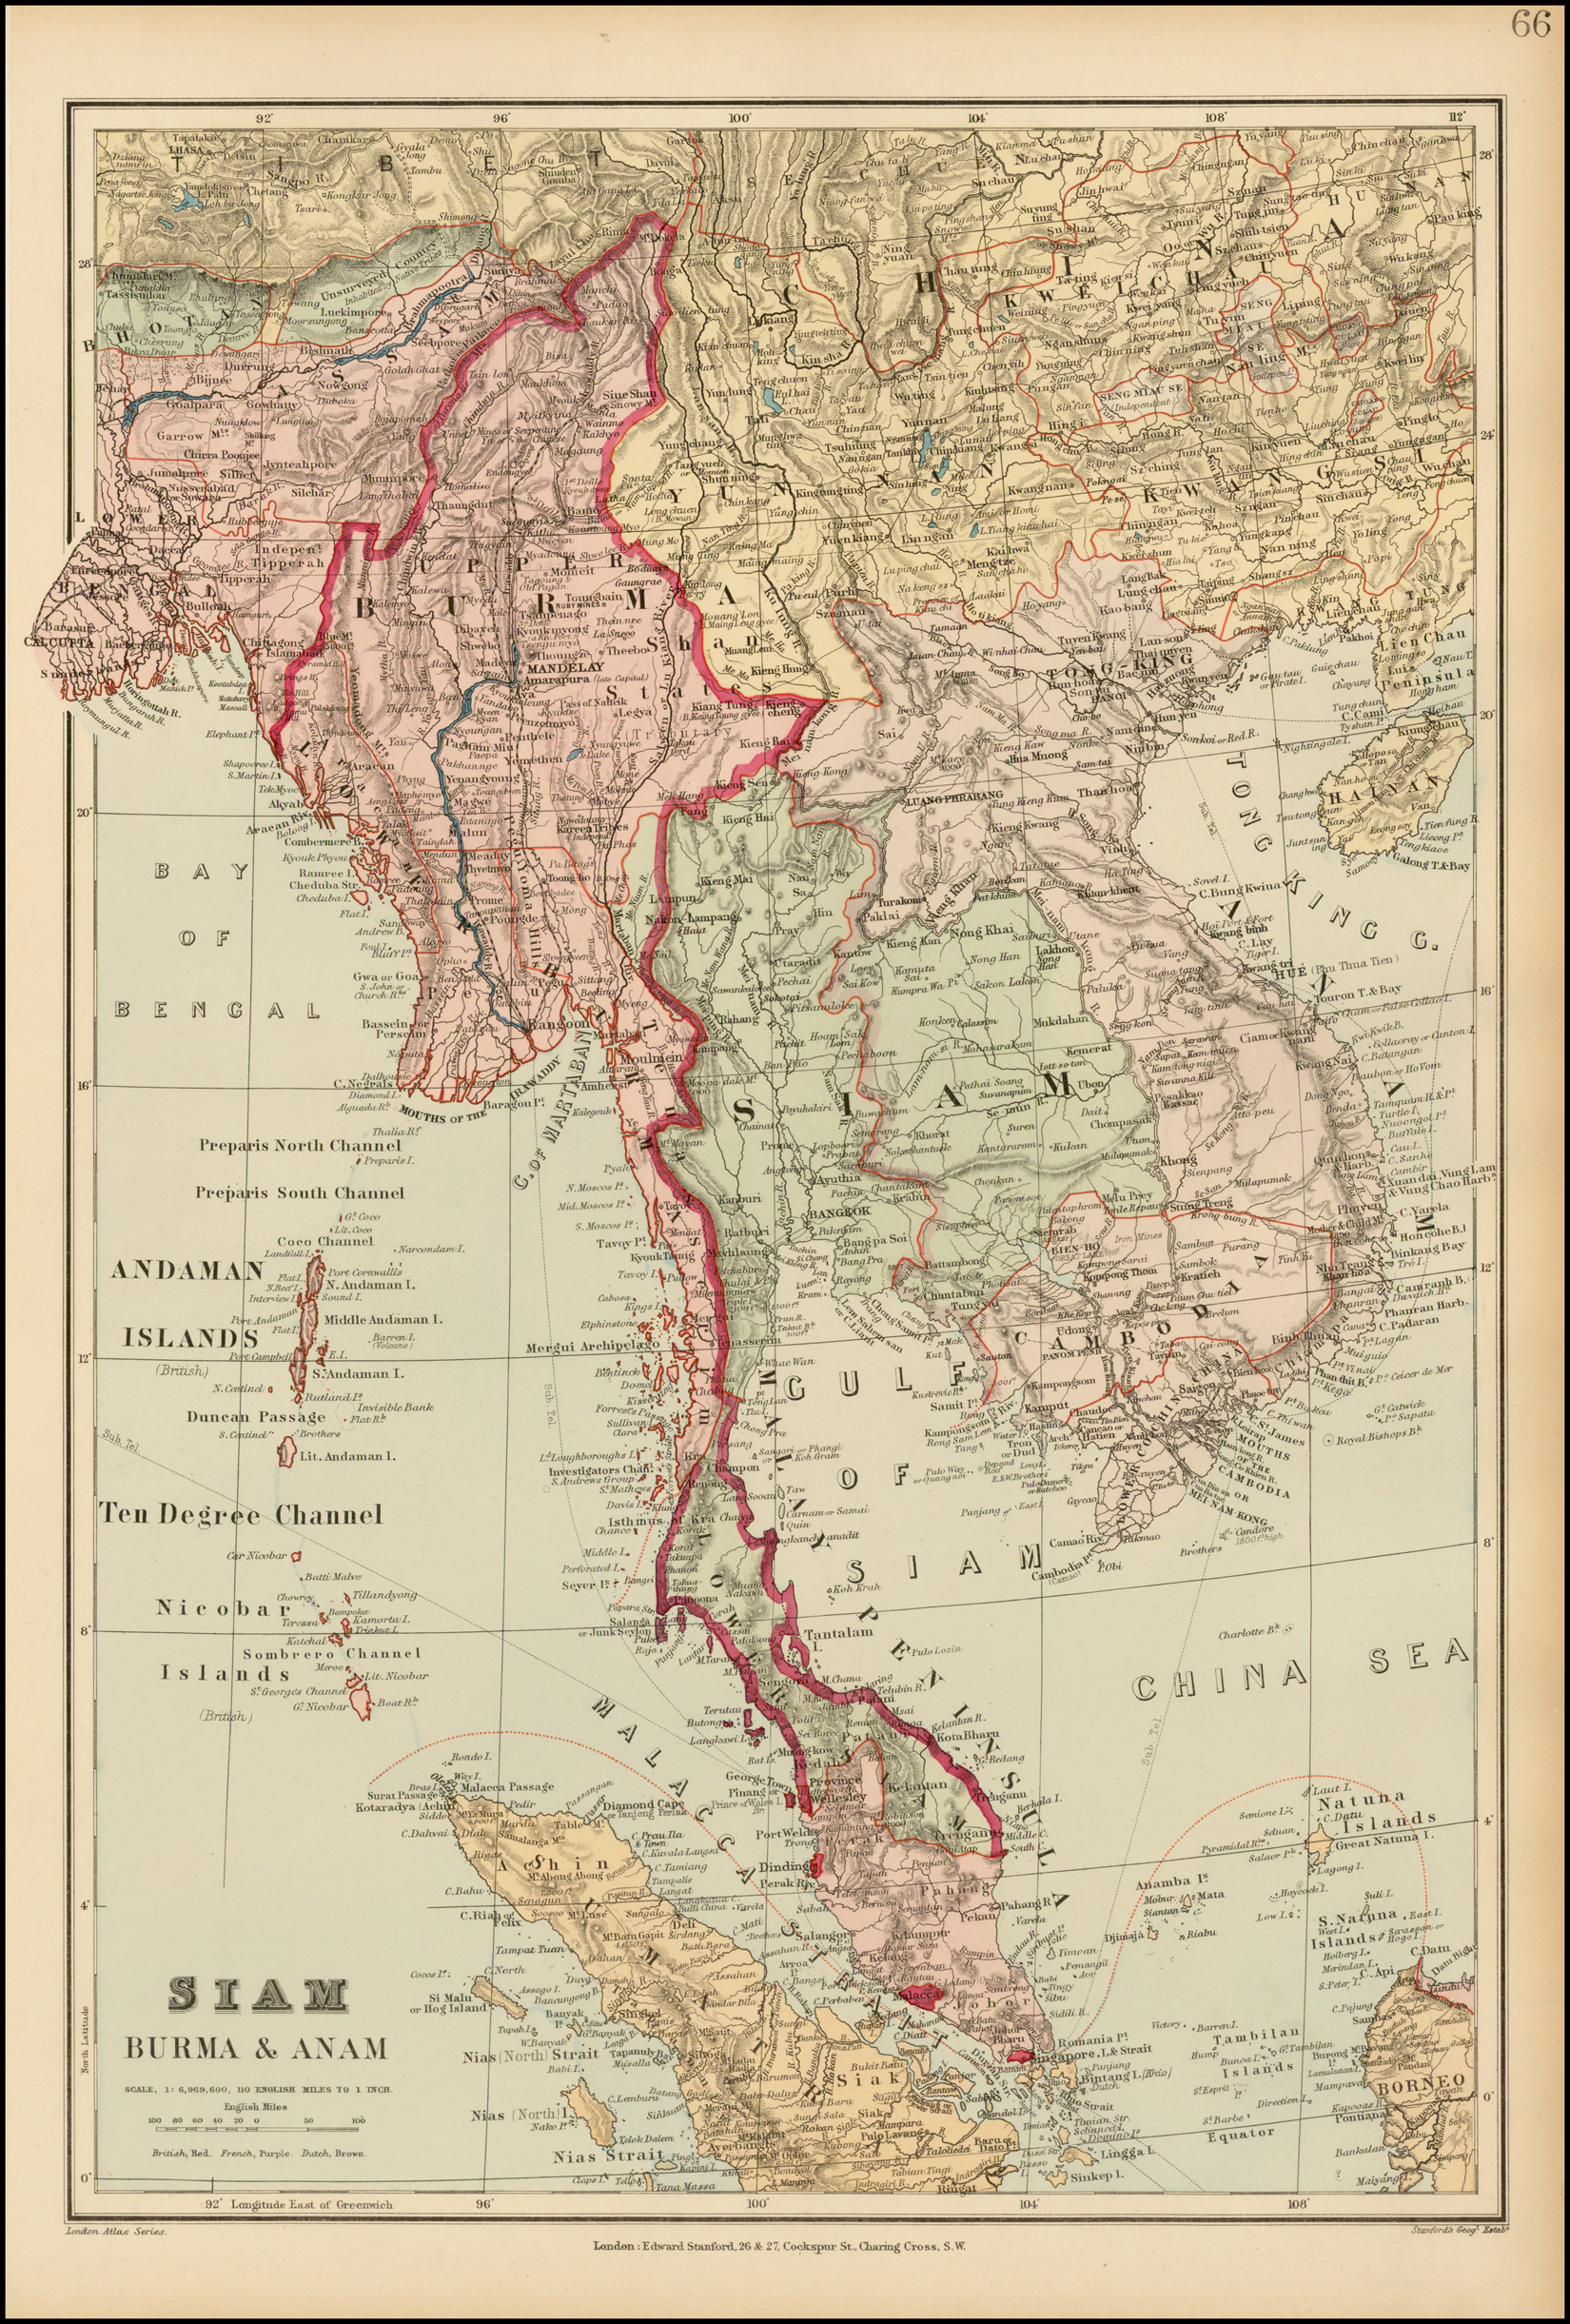 Siam Burma & Anam - Barry Lawrence Ruderman Antique Maps Inc. on schneider map, jvc map, alba map, scott map, siam map, atlantic map,